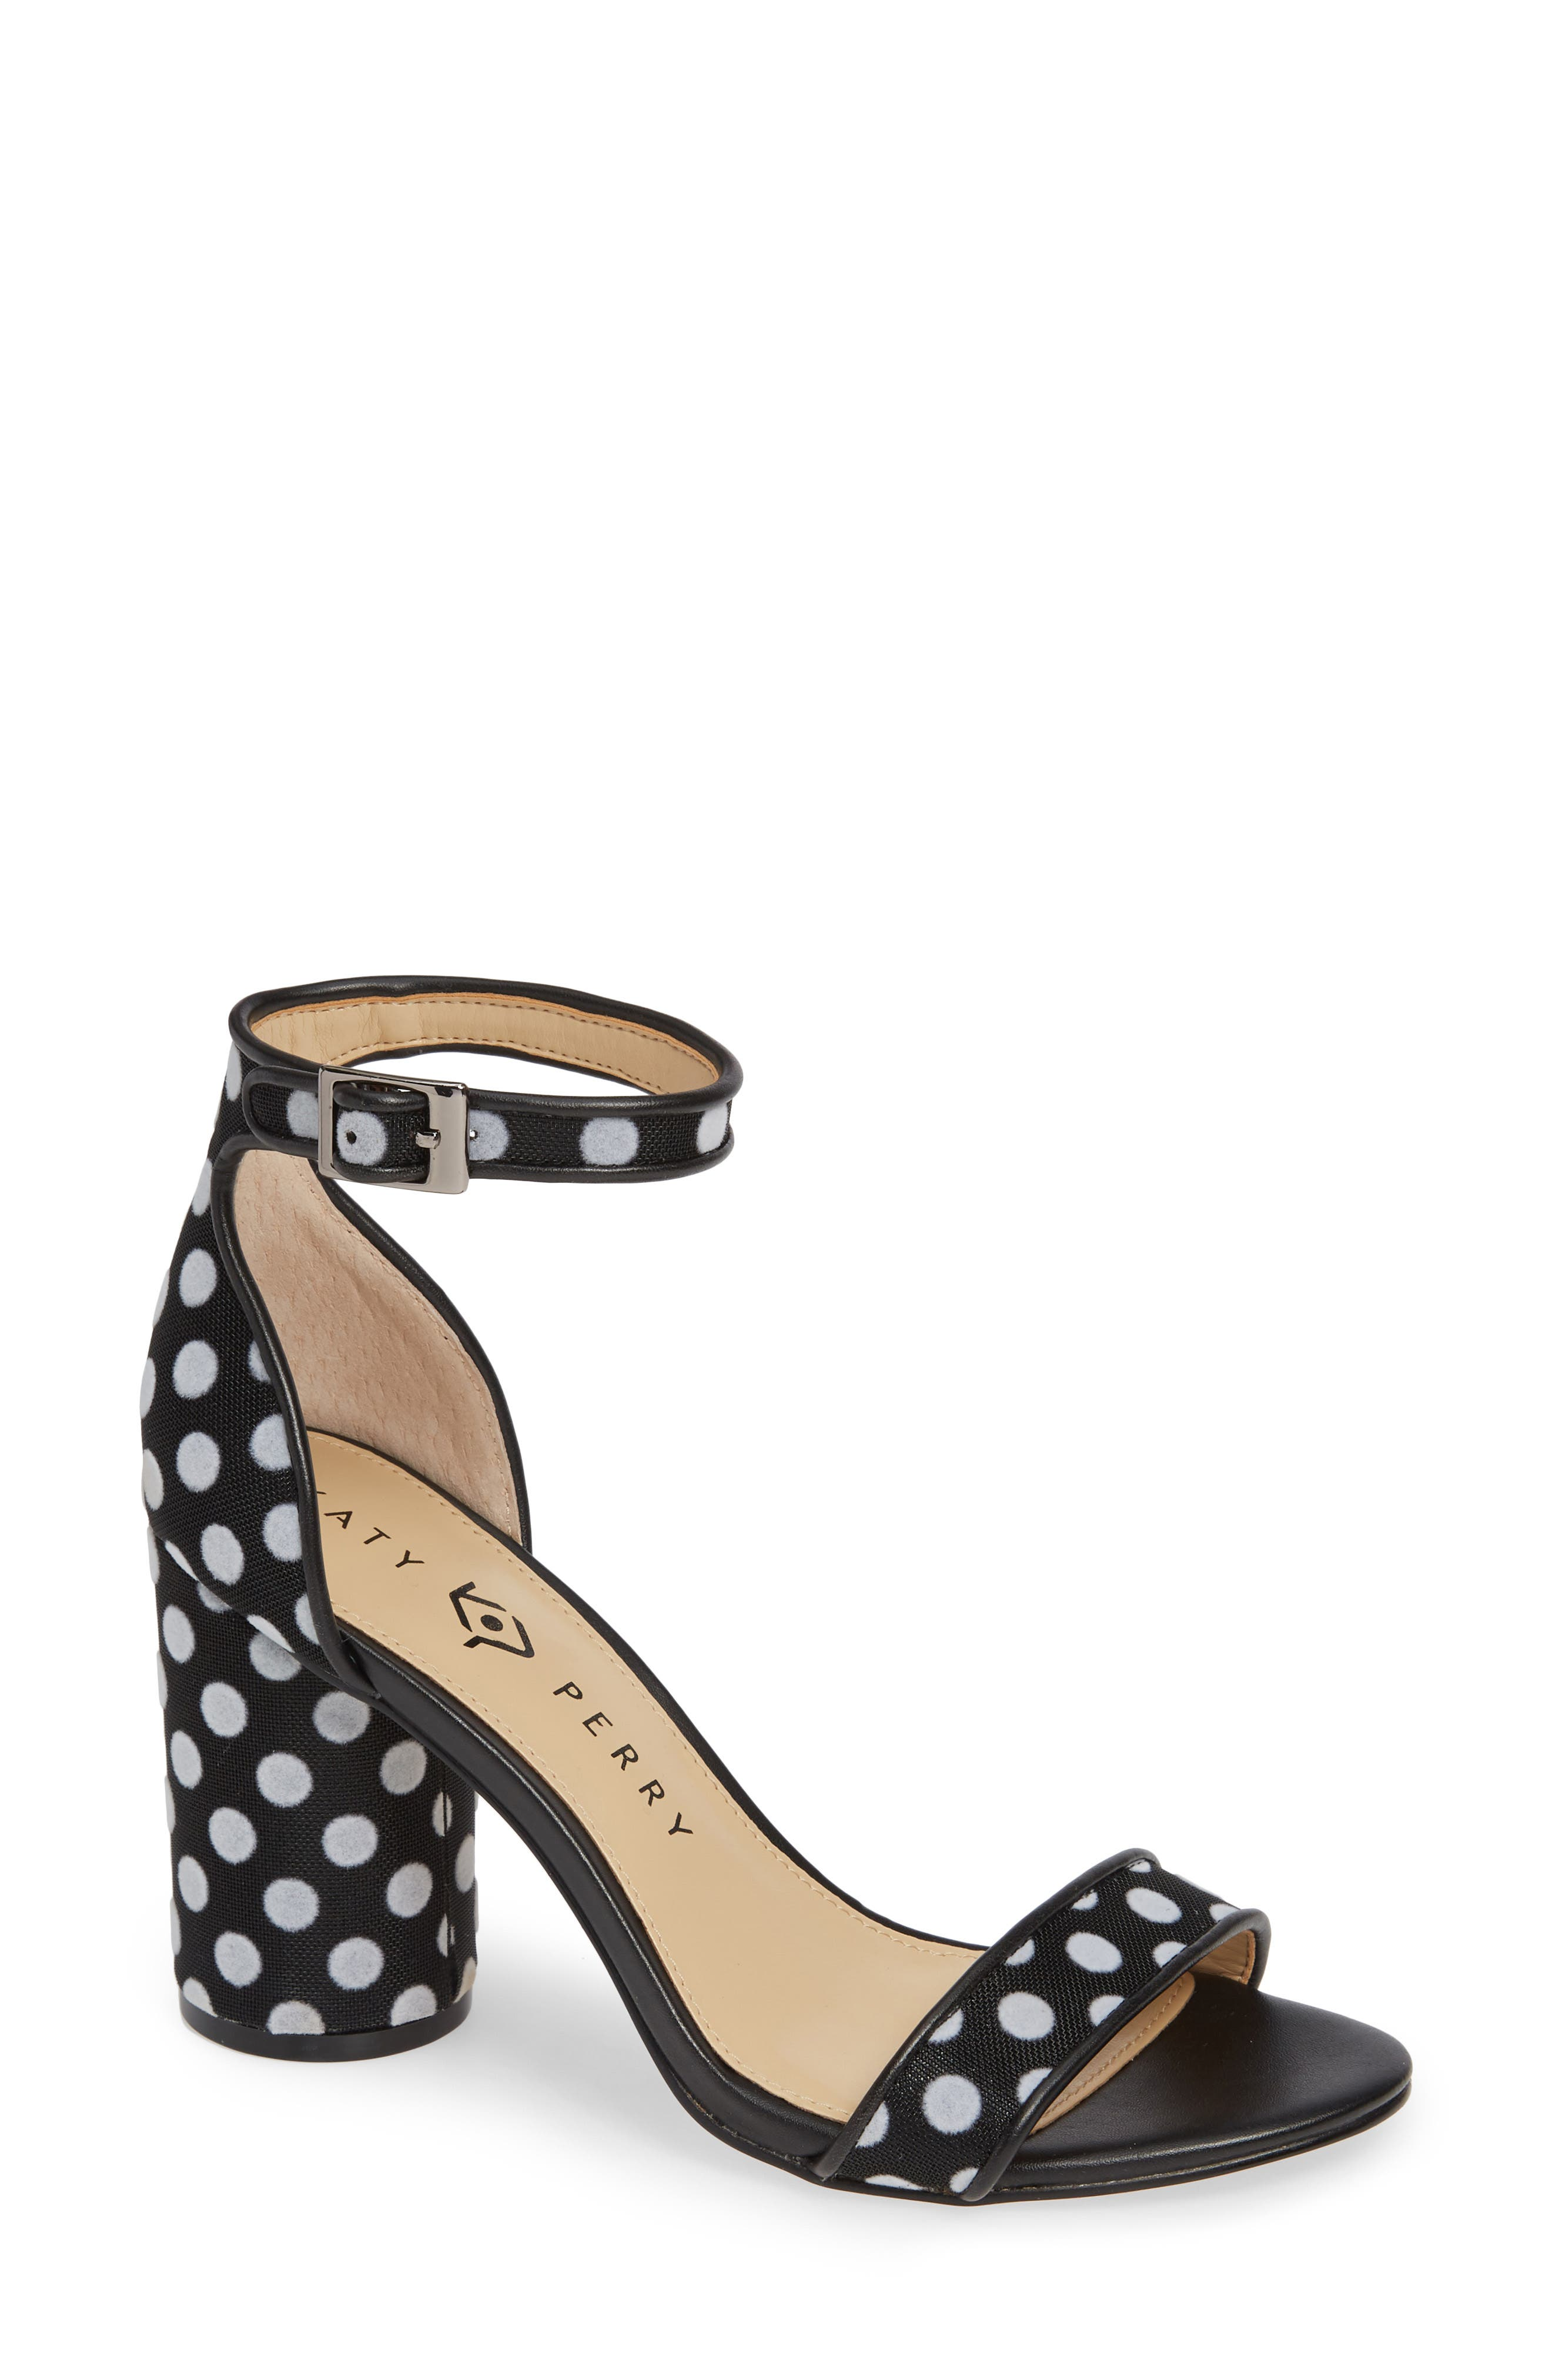 KATY PERRY Ankle Strap Sandal in Black/ White